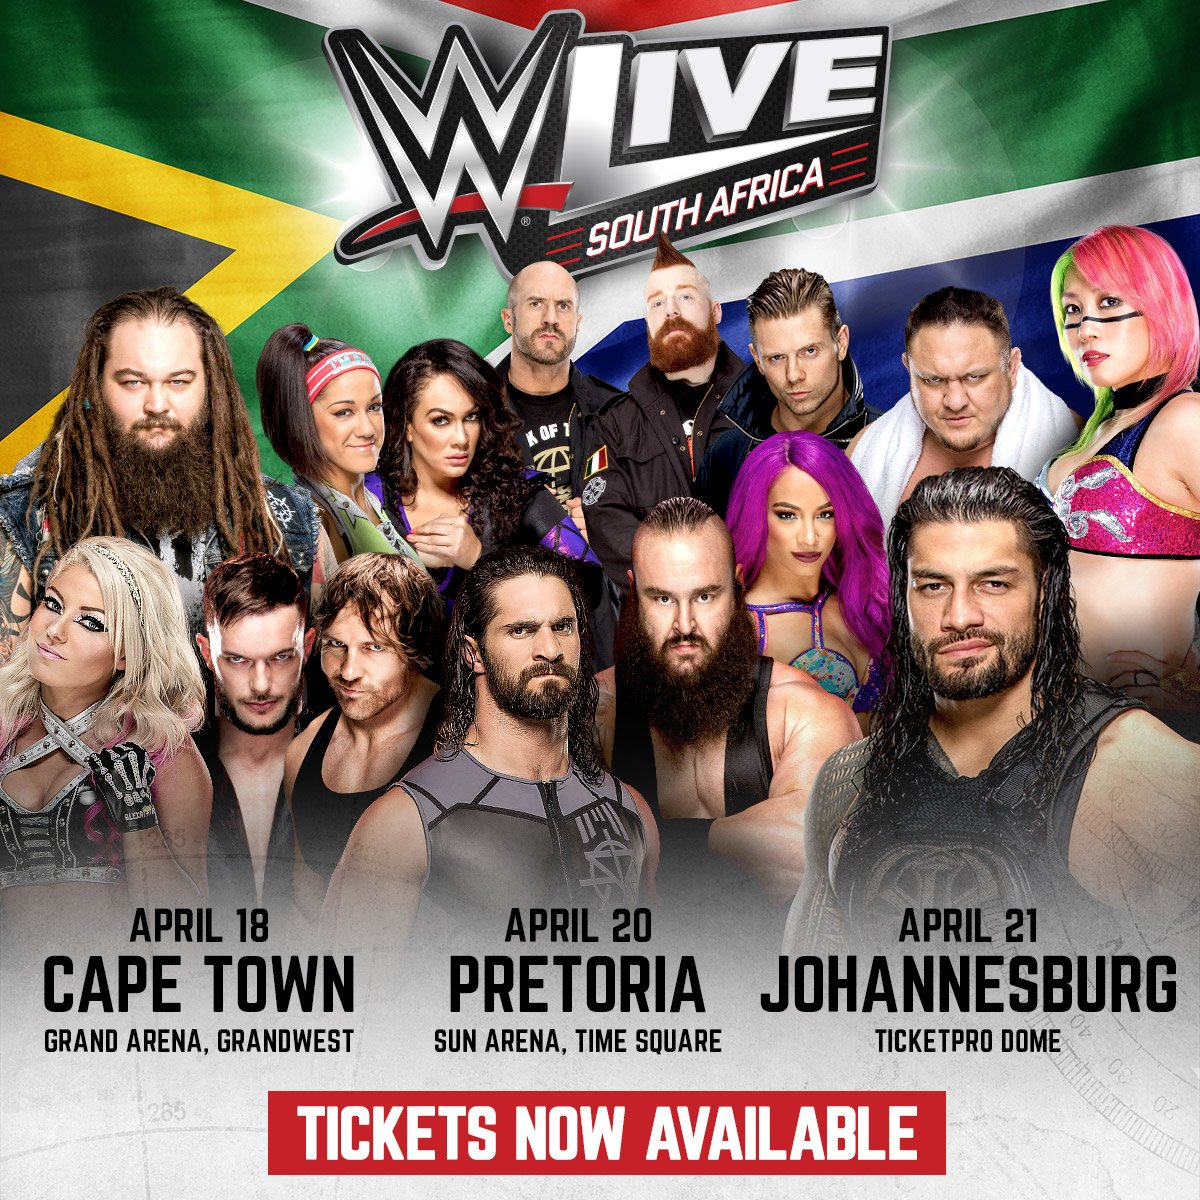 Tickets for @WWELive South Africa 🇿🇦  are now on sale for Cape Town, Pretoria and Johannesburg!   Get them here >> https://t.co/Kh0Bf8FSYx